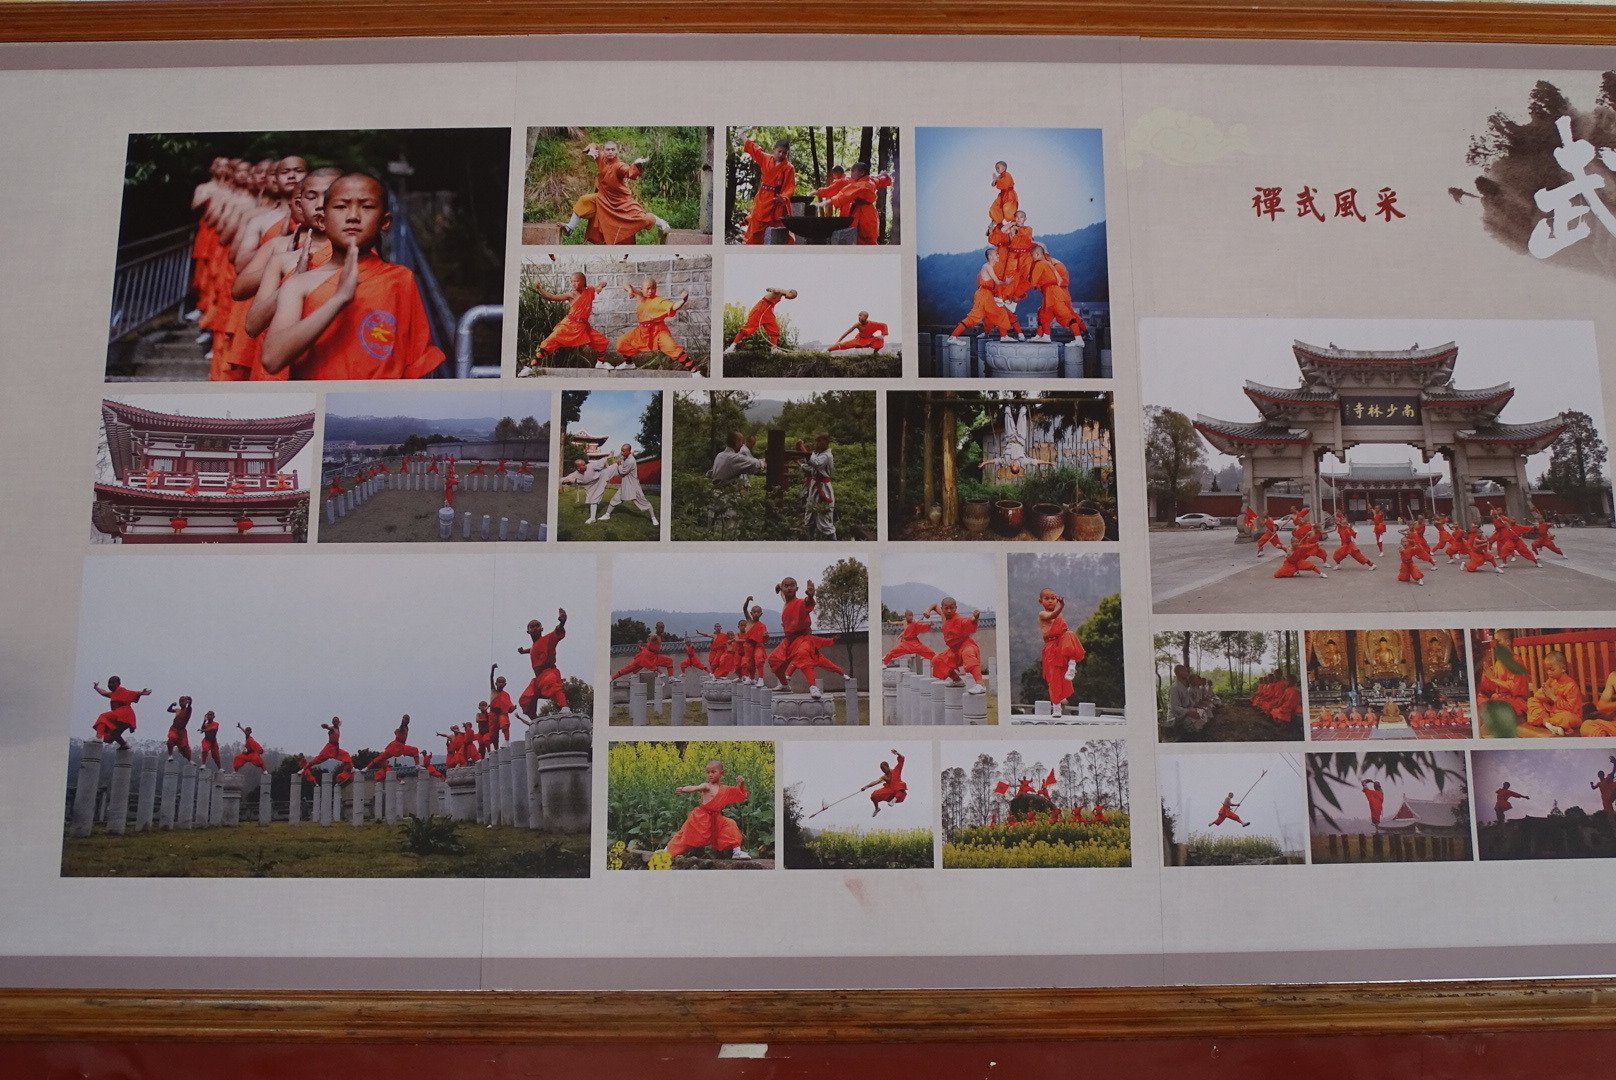 Billboard with collage showing feats of Shaolin monks